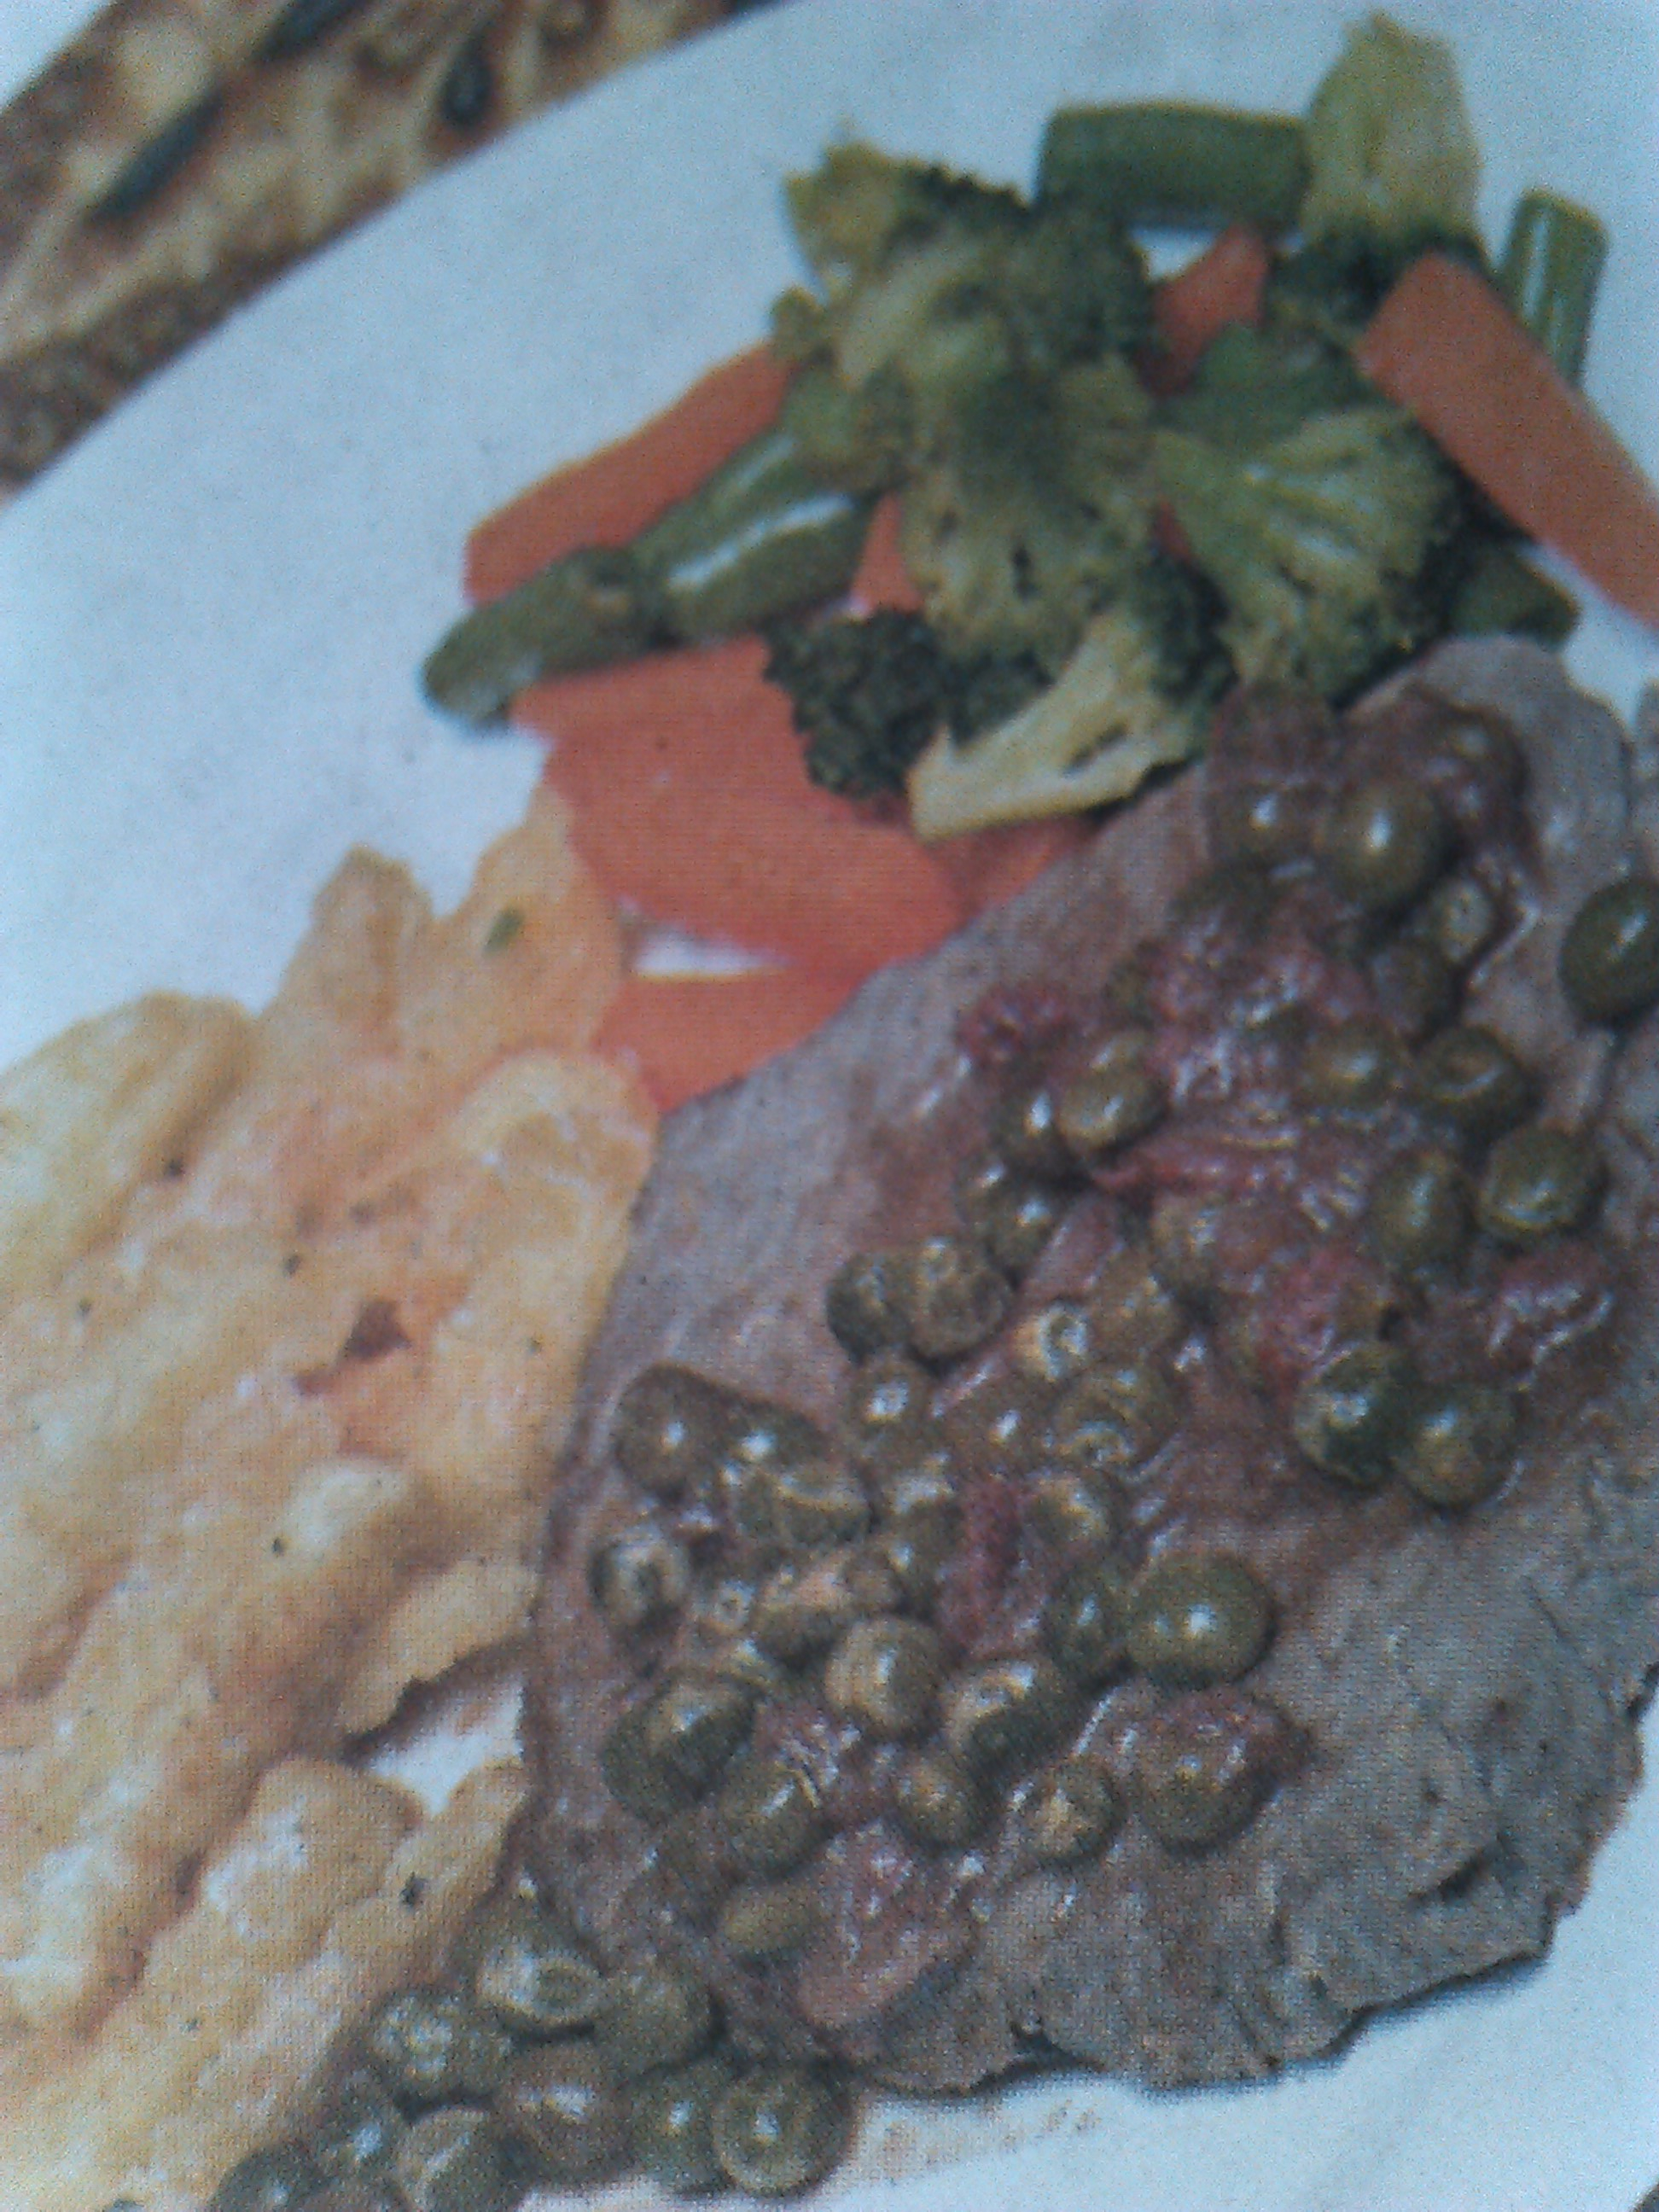 resep-beff-steak-rasa-garlic-saus-strawberry